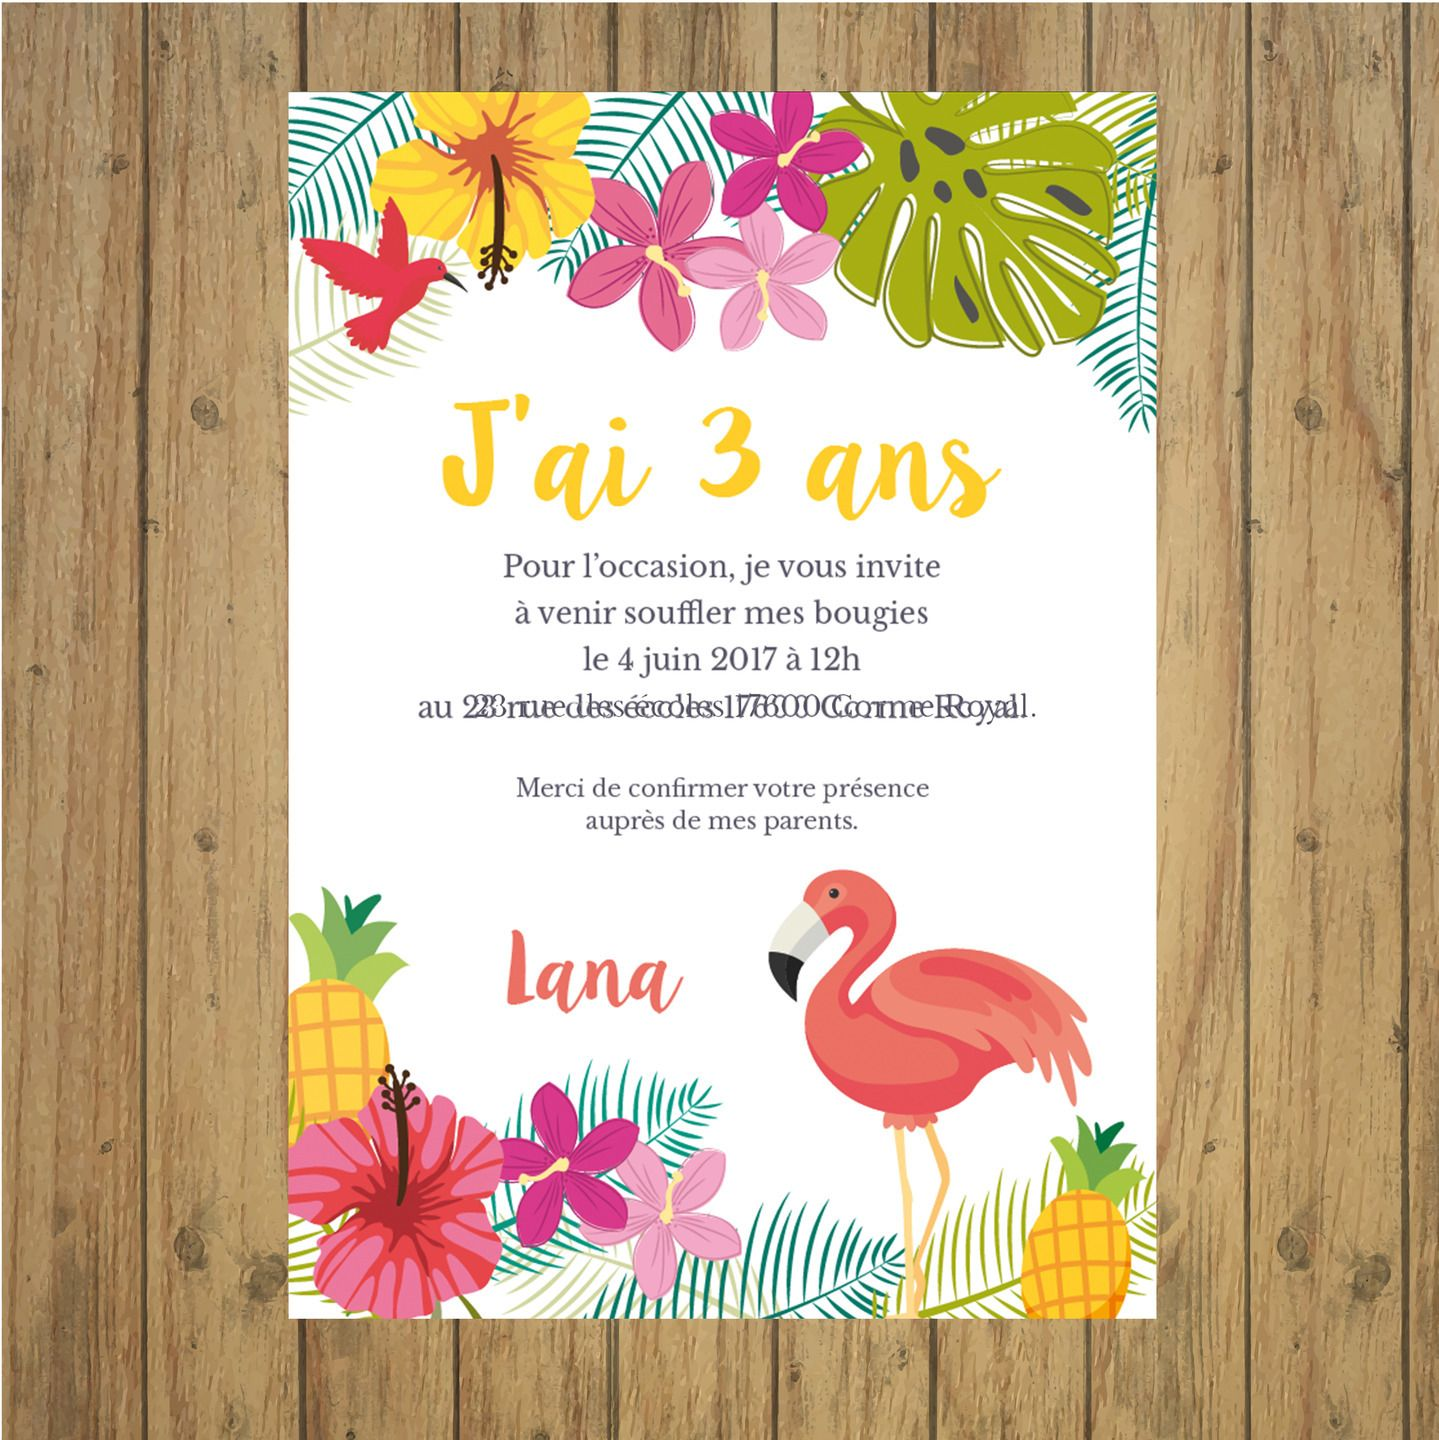 invitation anniversaire tropical carte papeterie flamant rose exotique jungle fondos. Black Bedroom Furniture Sets. Home Design Ideas